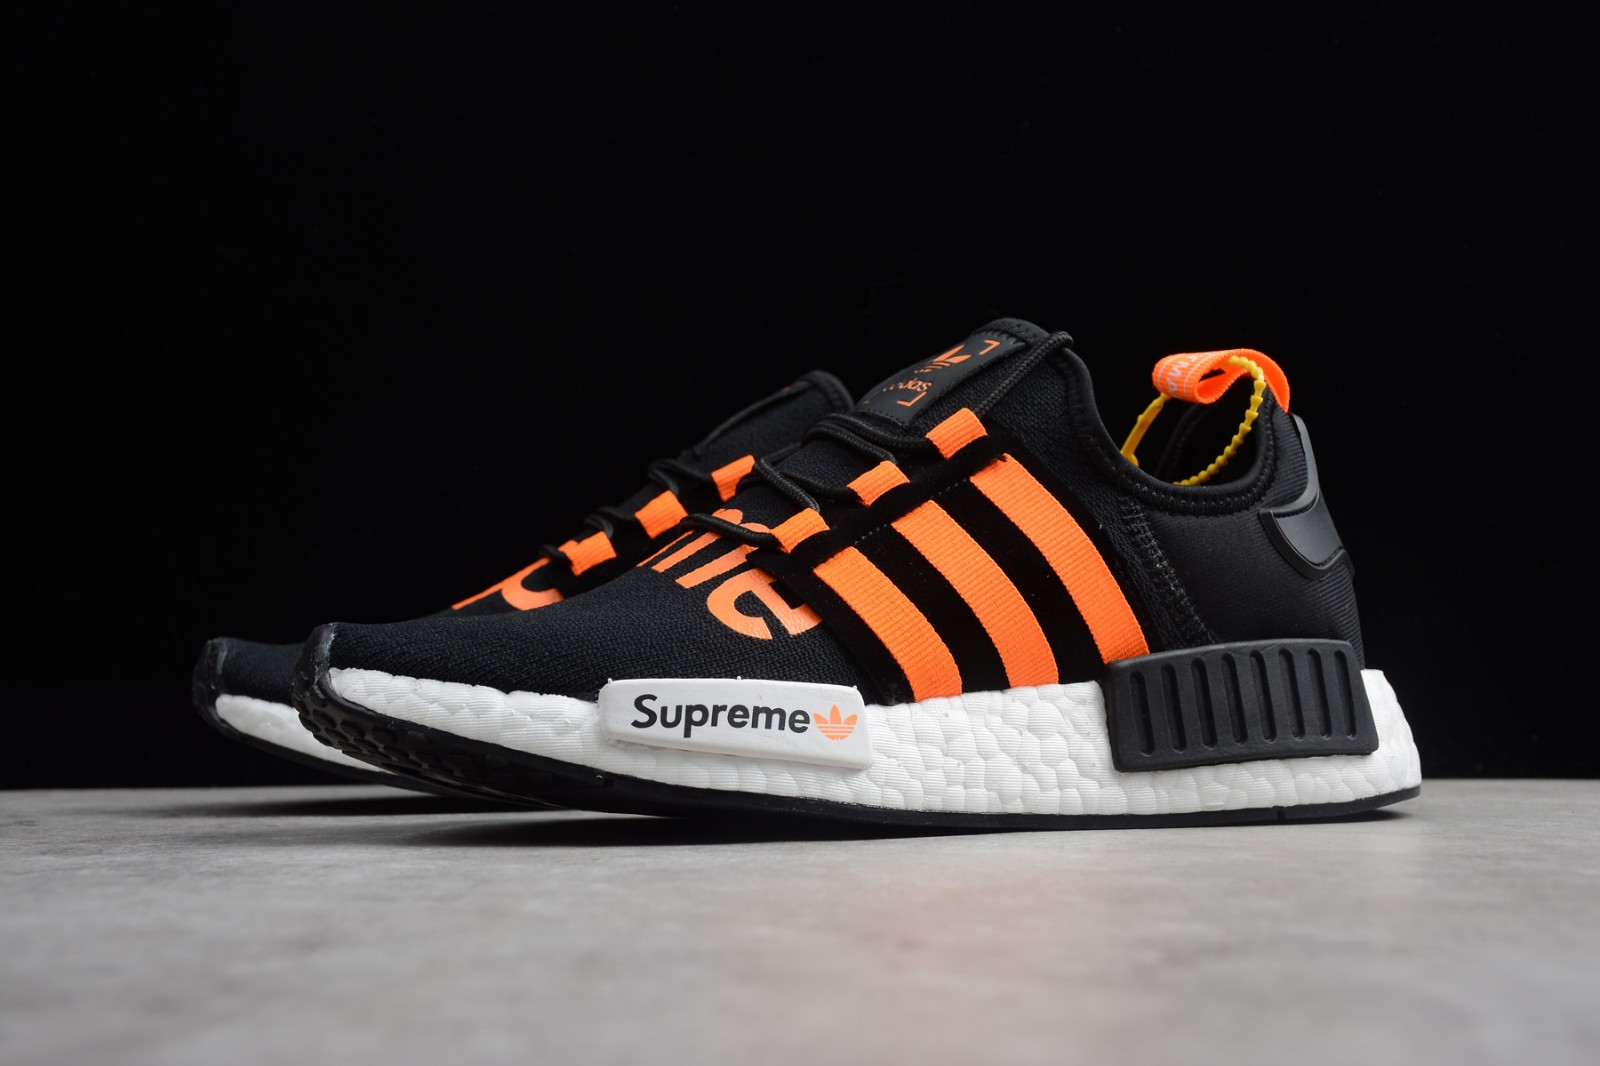 Supreme X Adidas Nmd R1 Black Orange White Da8867 Yezshoes